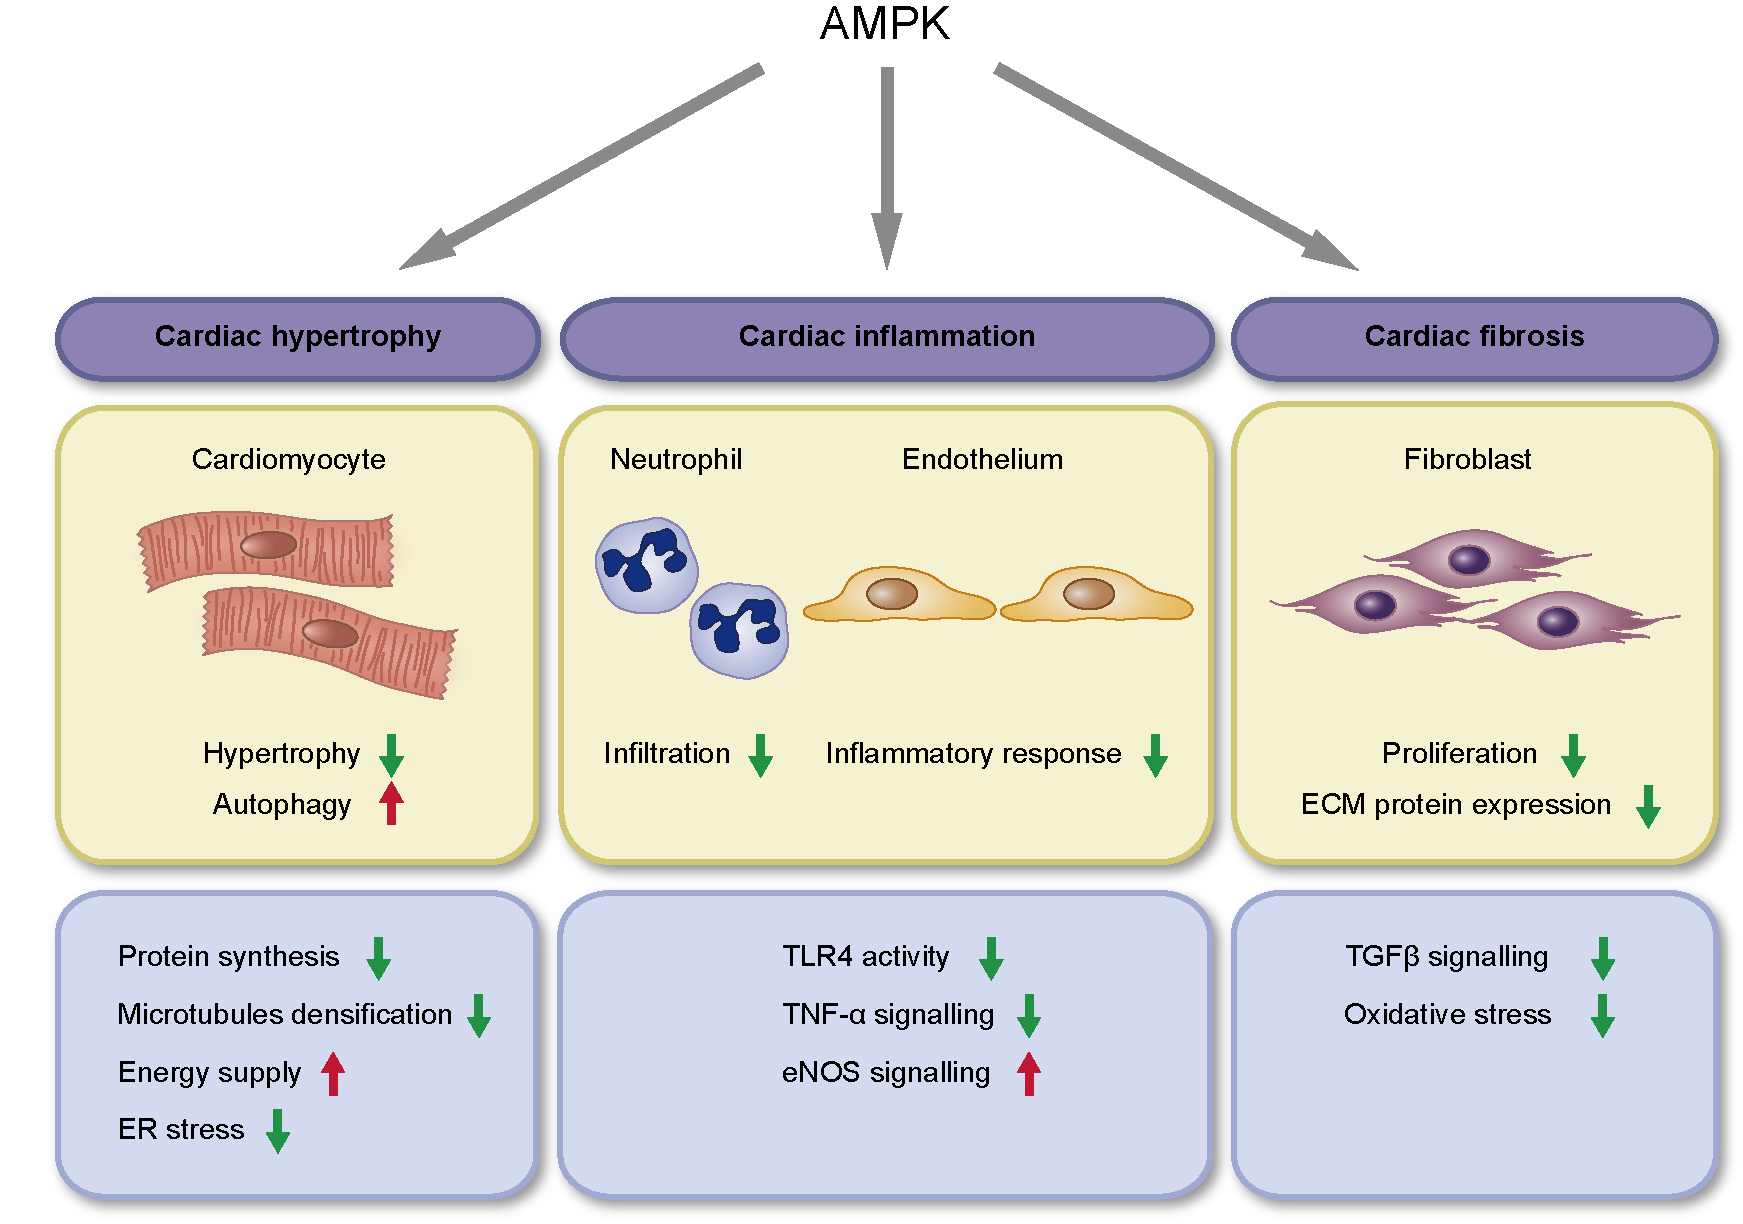 AMPK and cardiac remodelling